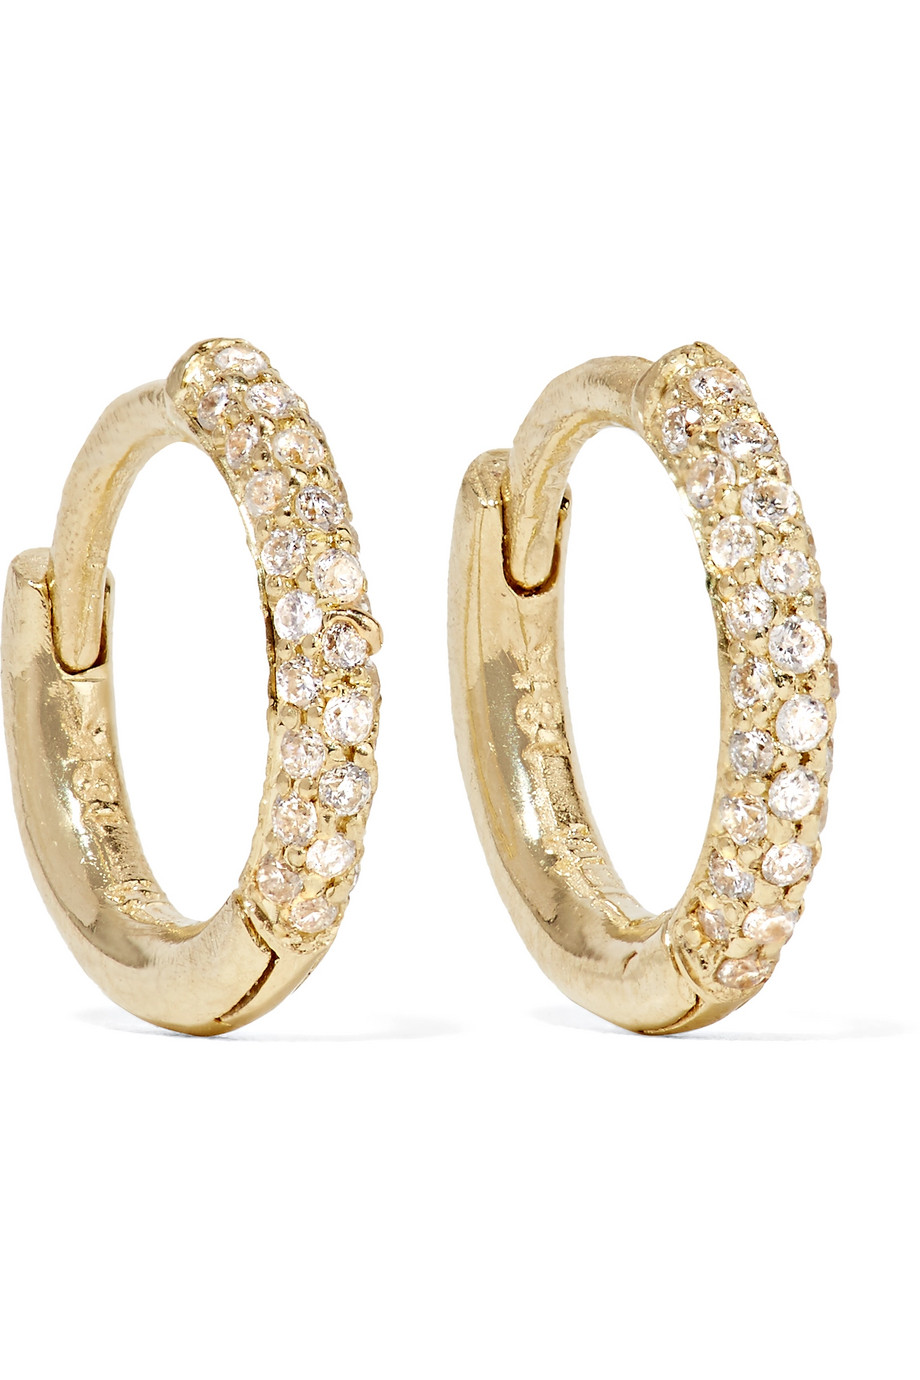 Jennifer Meyer Huggie 18-Karat Gold Diamond Hoop Earrings, Women's